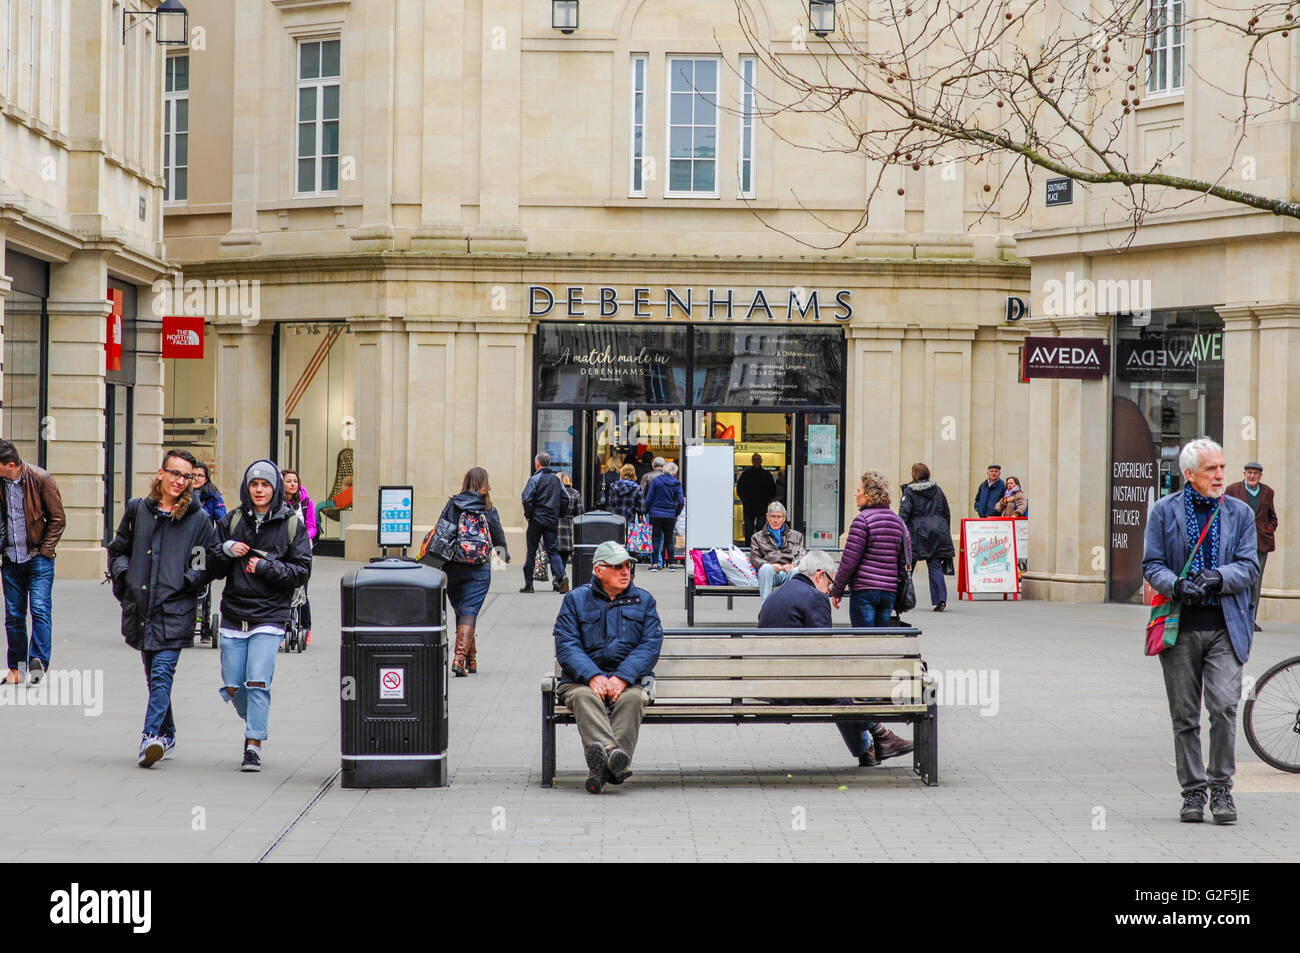 Shop Shops Bath Uk Stock Photos & Shop Shops Bath Uk Stock Images ...